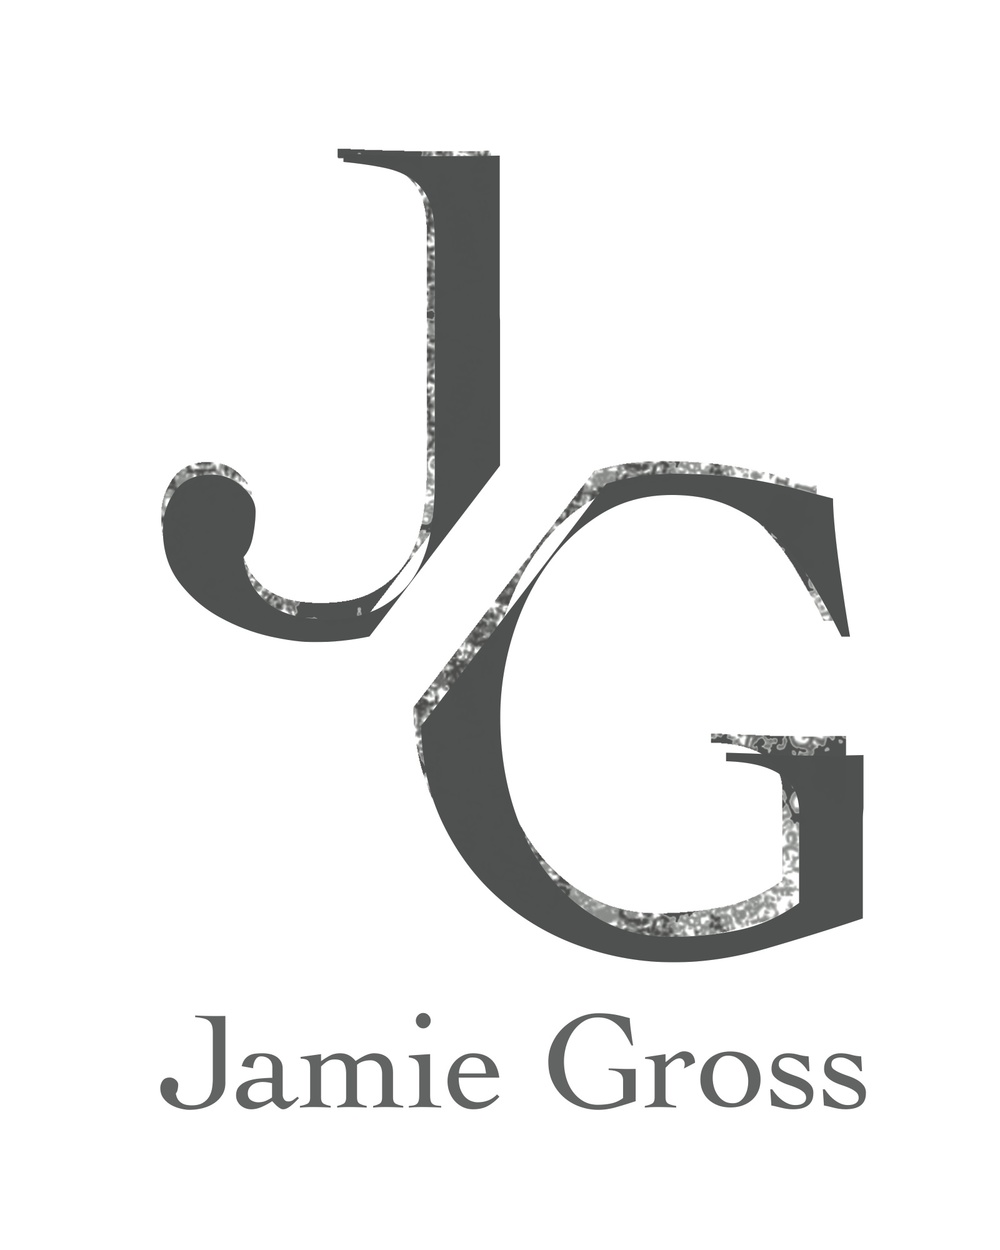 Jamie Gross